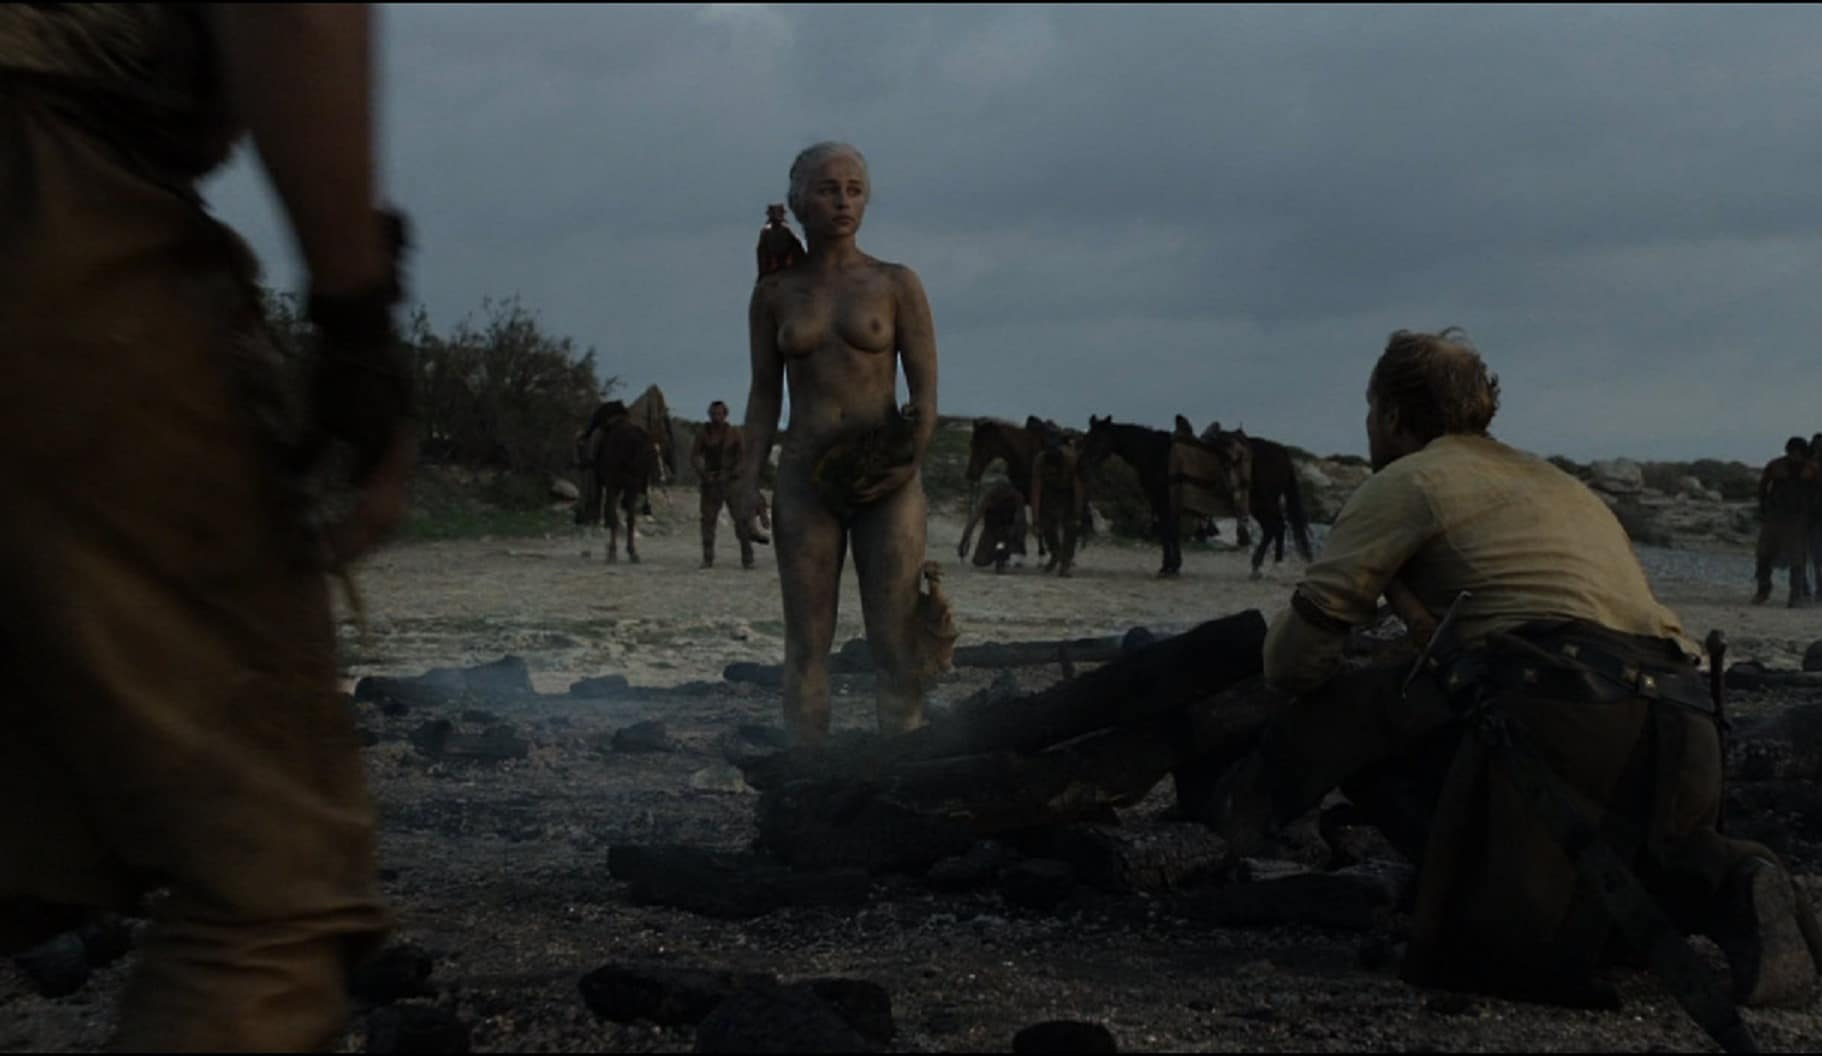 Emilia Clarke completely naked standing in ash